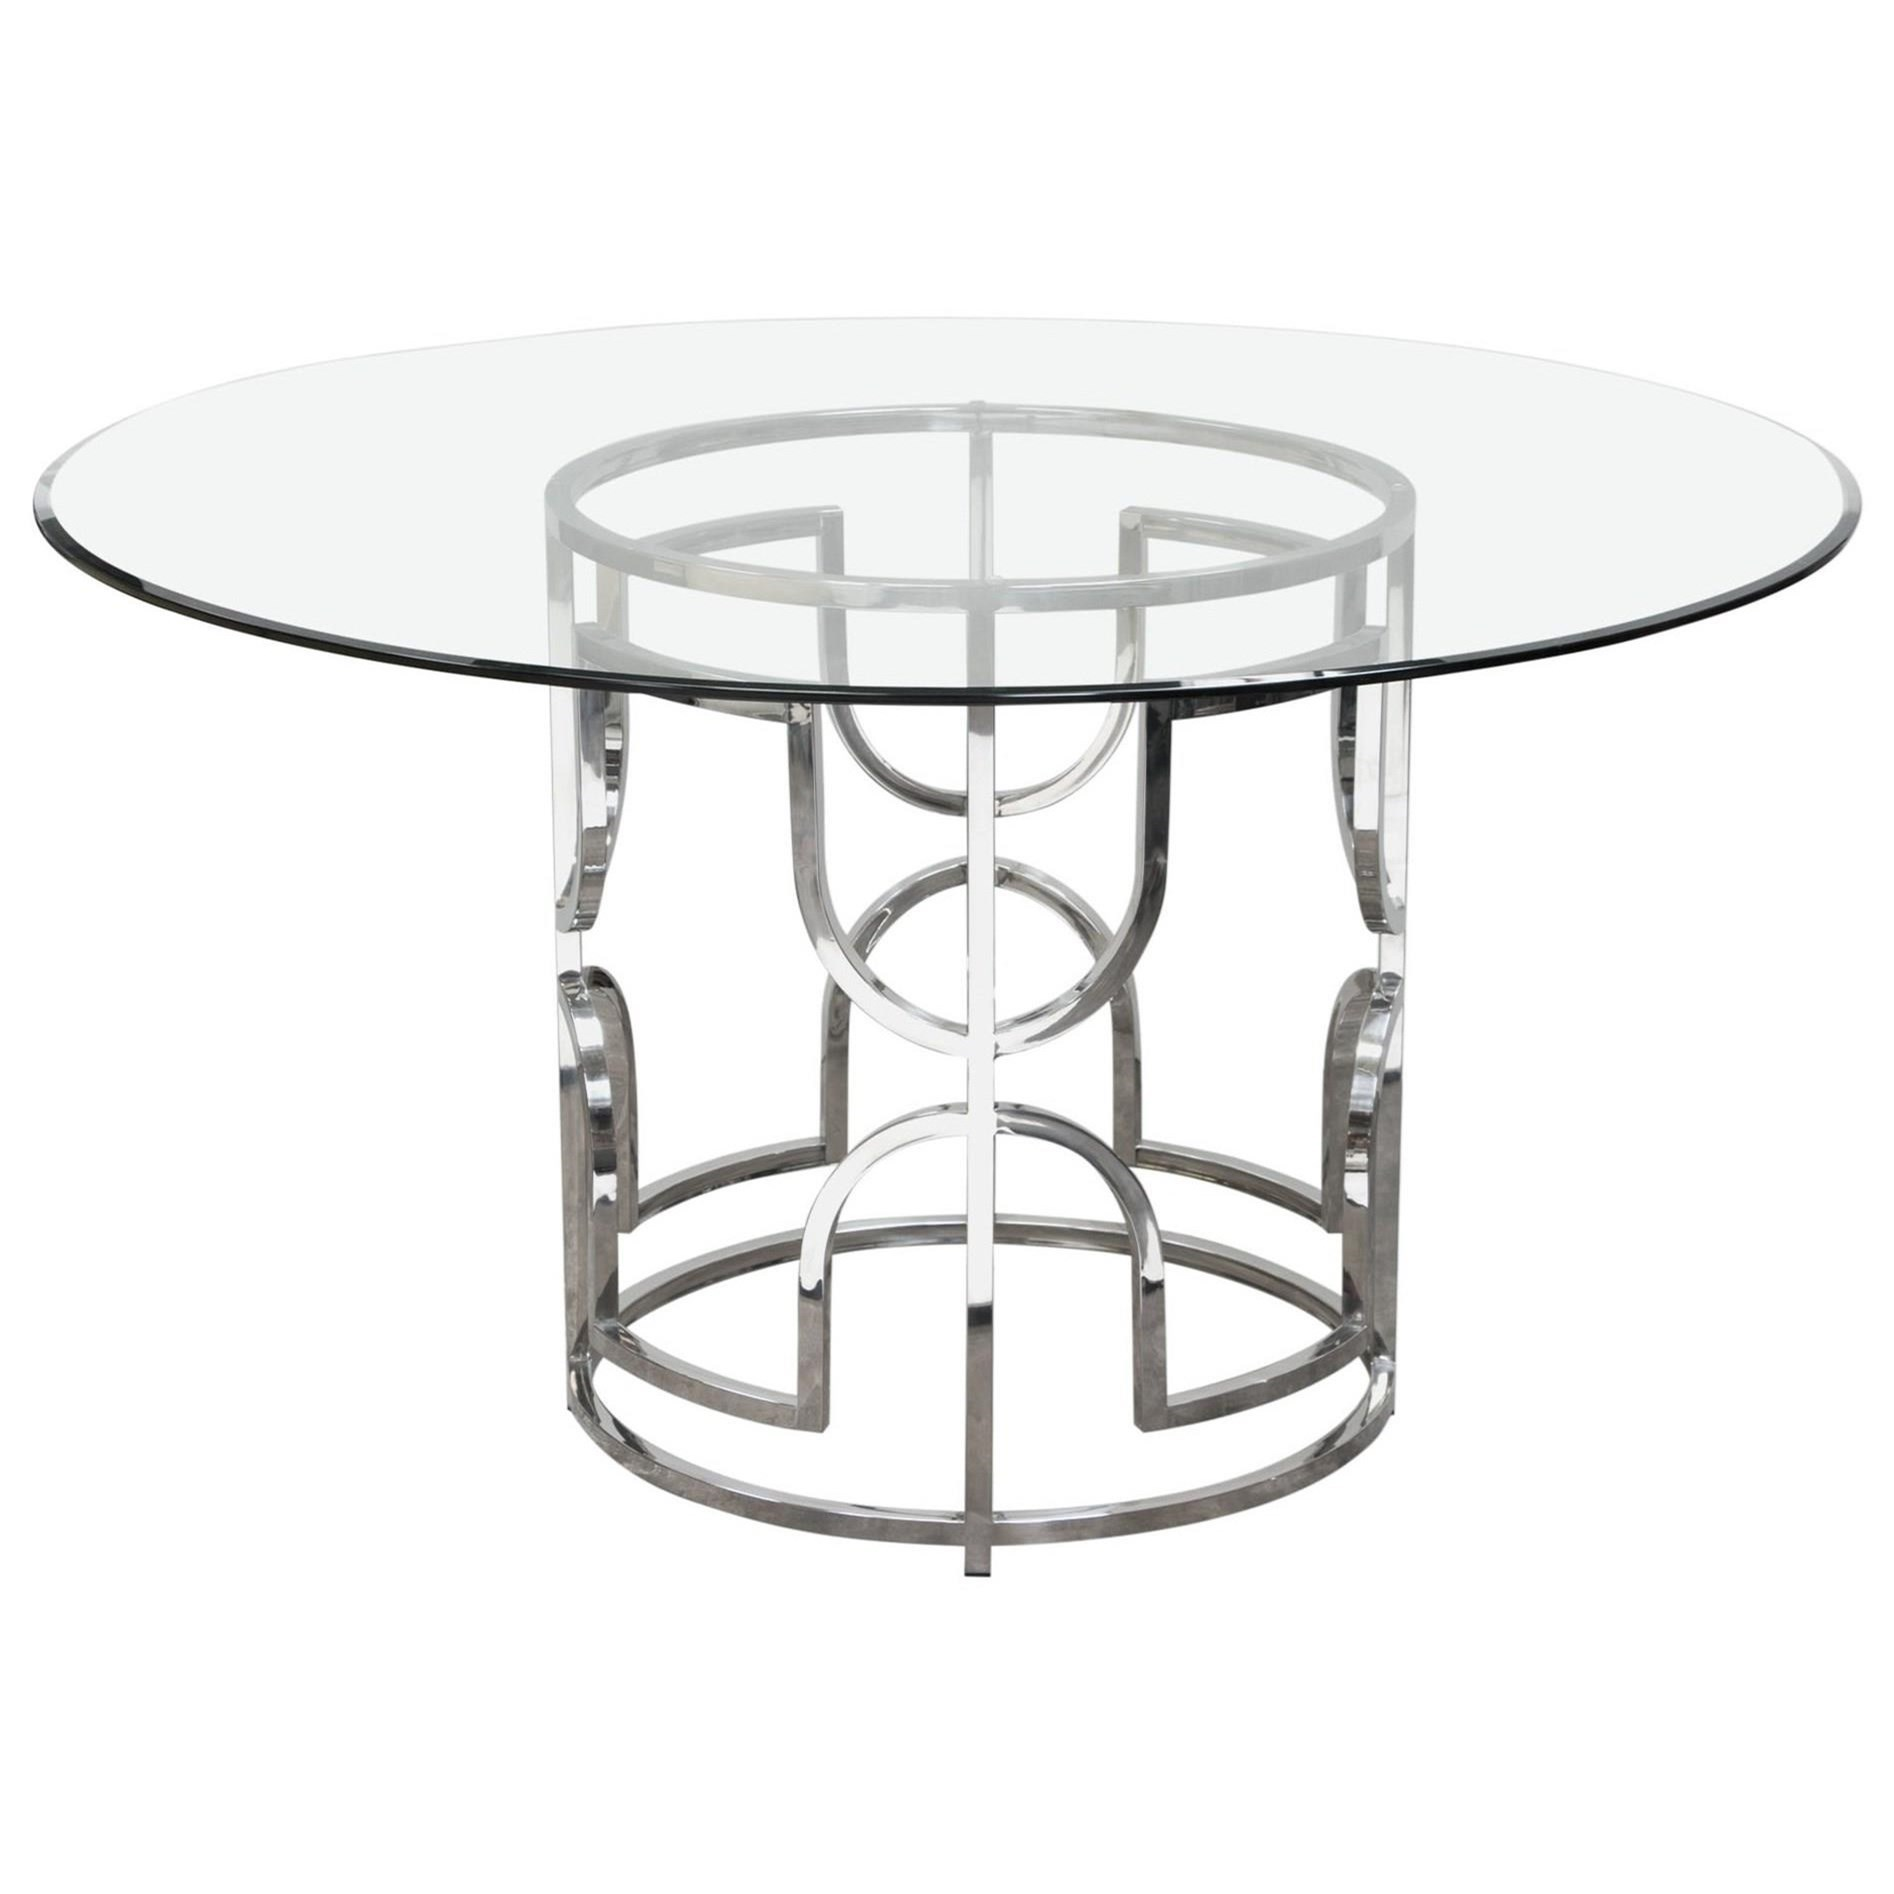 Diamond Sofa Avalon Avalonrdt 54 Round Glass Top Dining